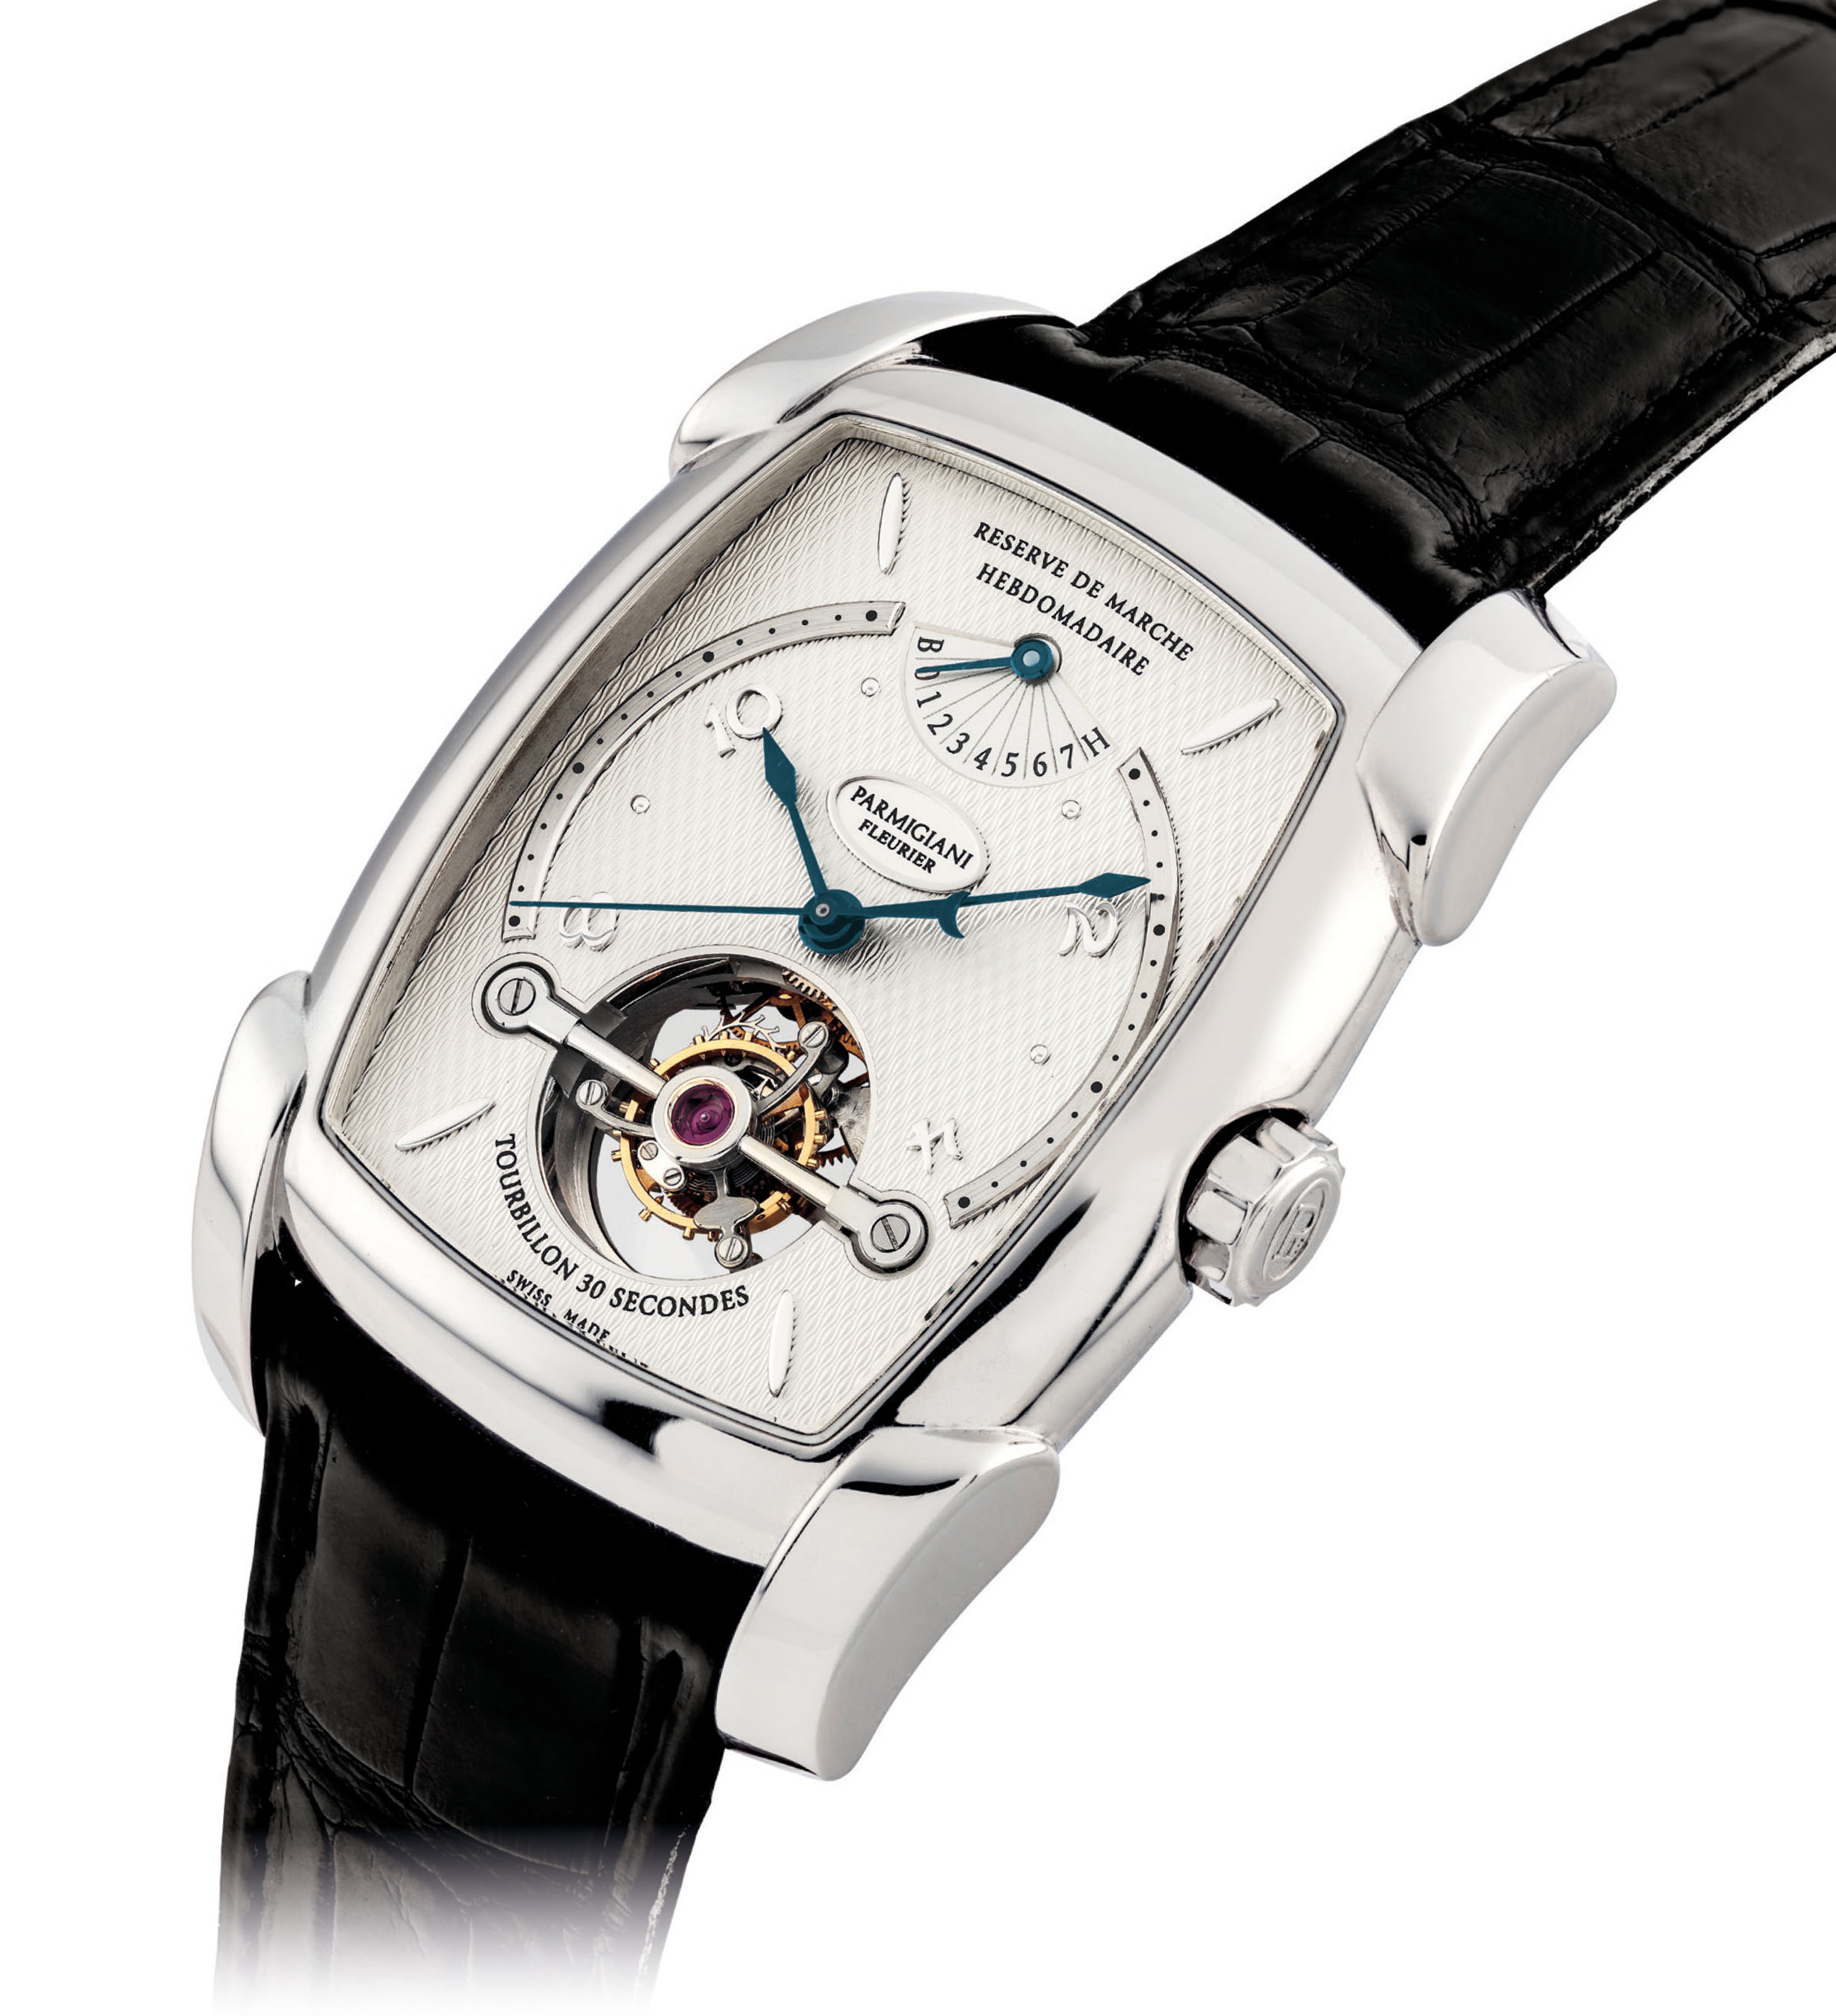 PARMIGIANI. A FINE AND EXTREMELY RARE PLATINUM LIMITED EDITION 30-SECOND TOURBILLON WRISTWATCH WITH SWEEP CENTRE SECONDS AND 7-DAY POWER RESERVE